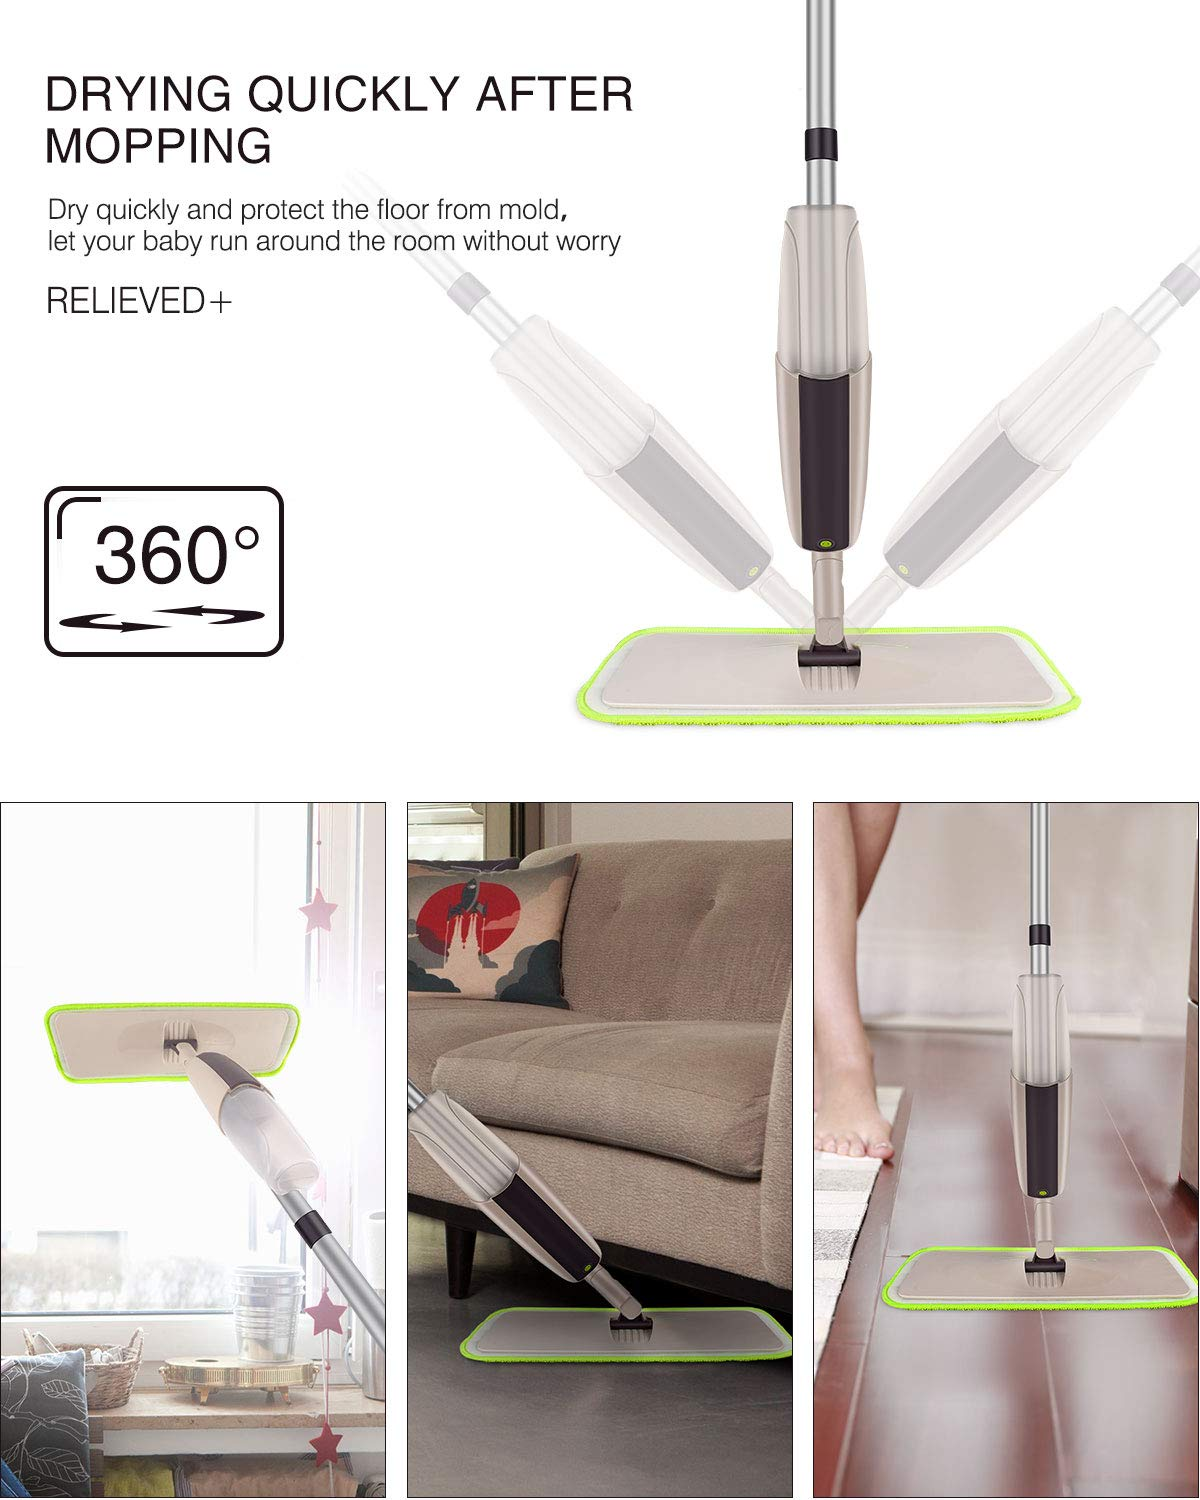 Hardwood Spray Mop for Floor Cleaning, CXhome Microfiber Mop for Tile Floors, Wet Dry Mop with Sprayer and 2 Mop Pads, 1 Refillable Bottle by CXhome (Image #5)